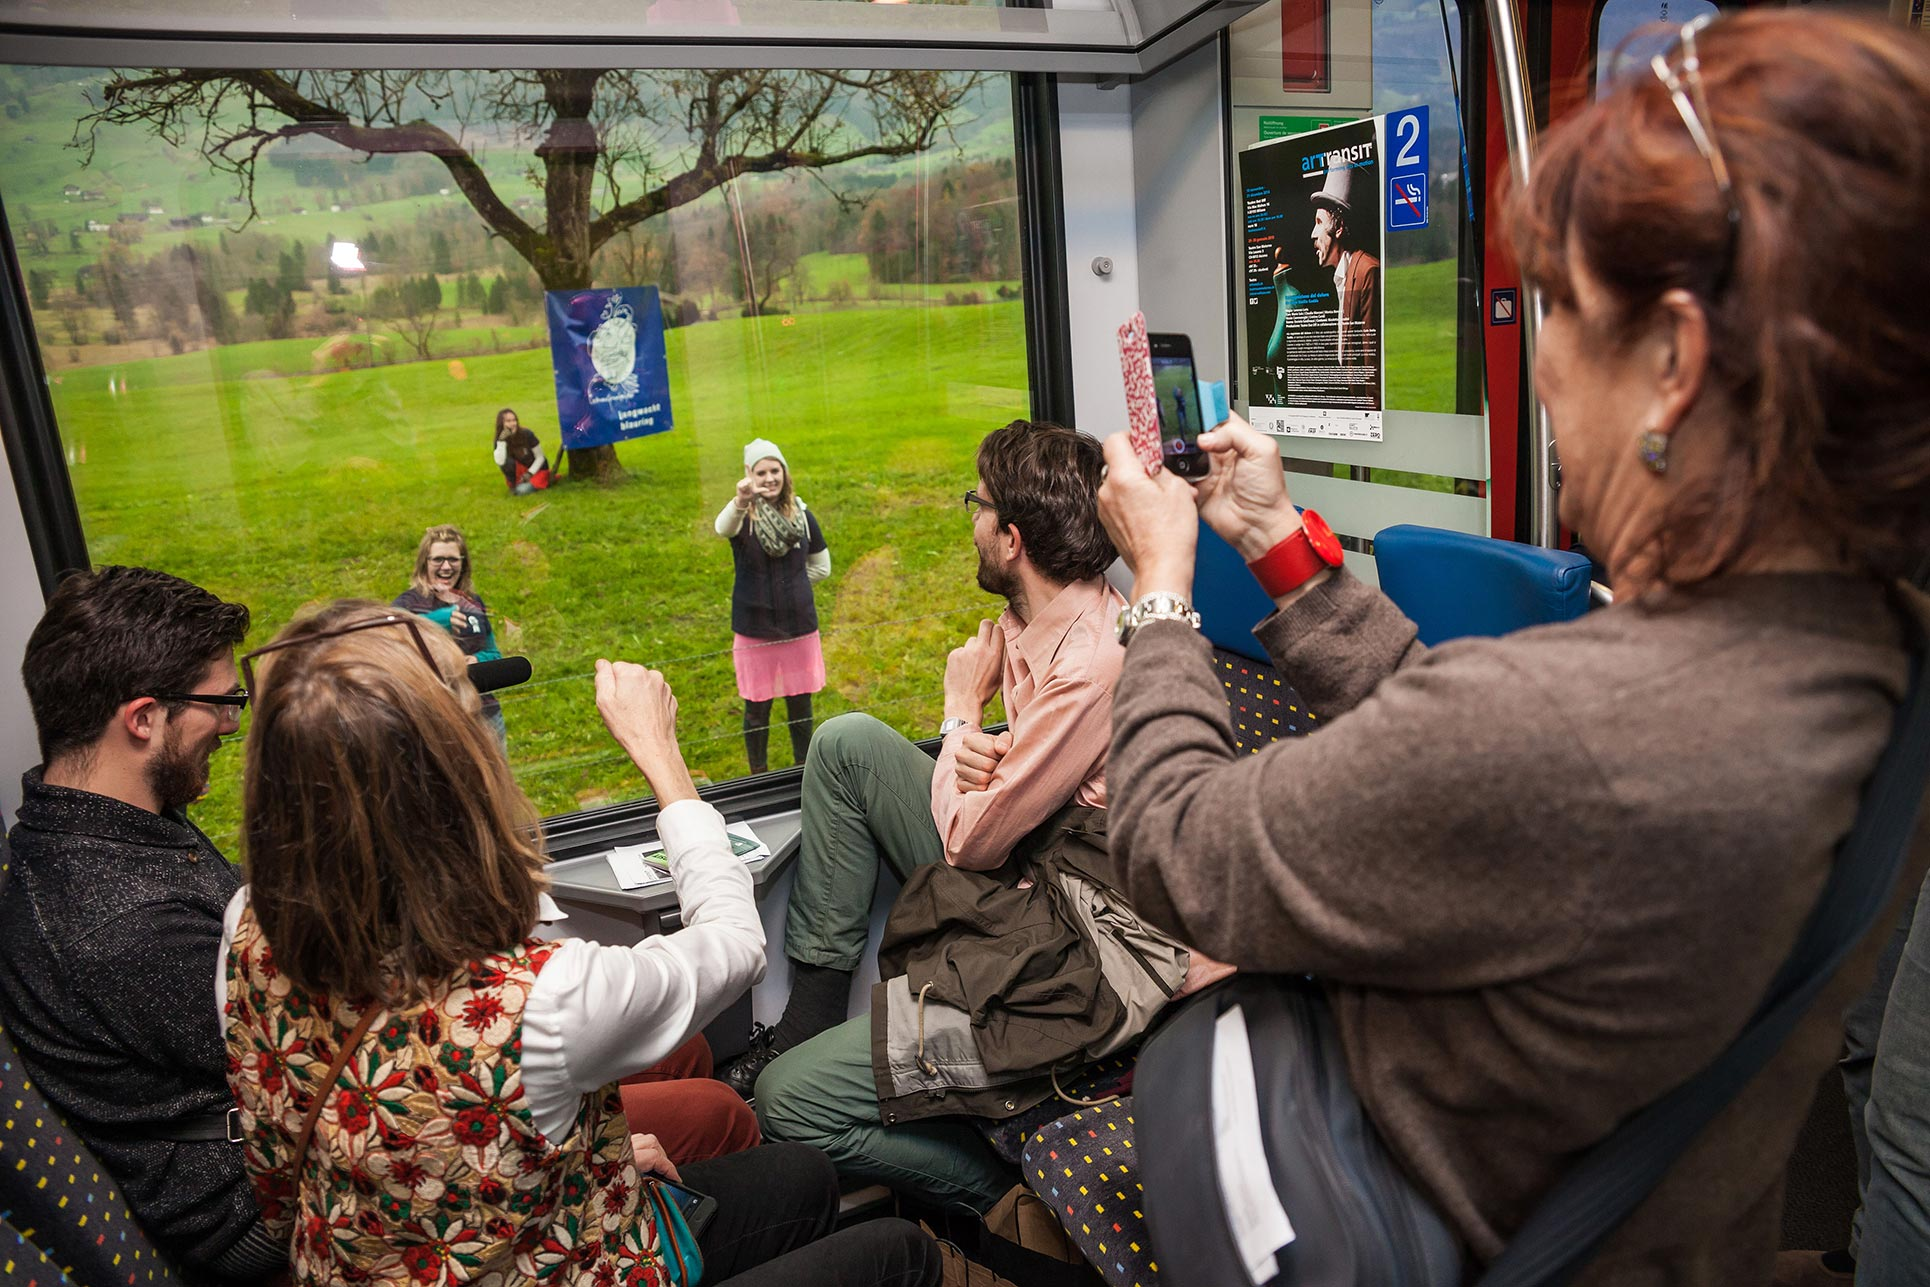 Blauring Altdorf, playing rock-paper-scissors through the train's window with the Performance-Train passengers while the train stands still (Photo: Tania Volobueva)